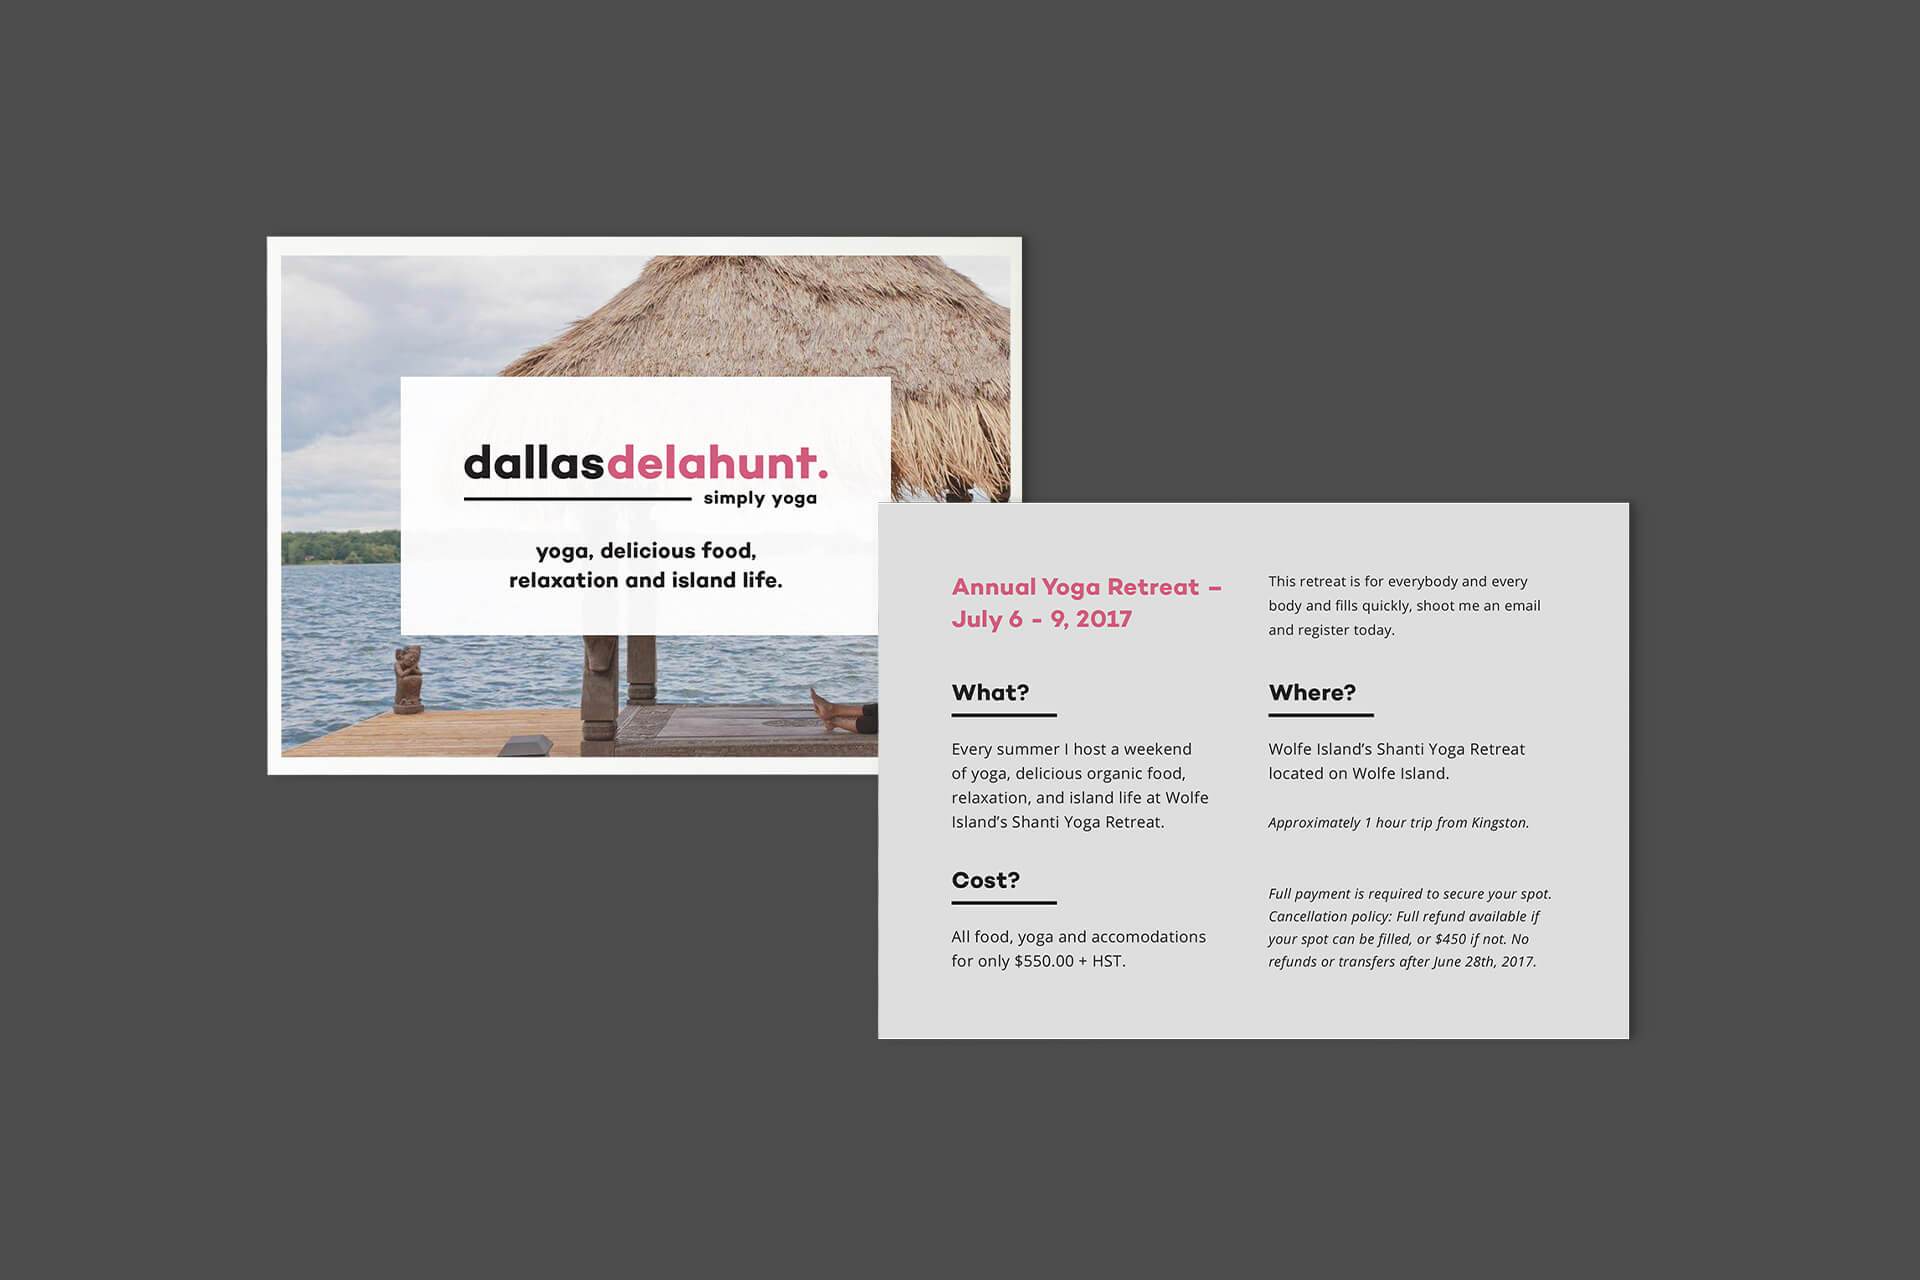 dallas delahunt yoga brand design postcard marketing material